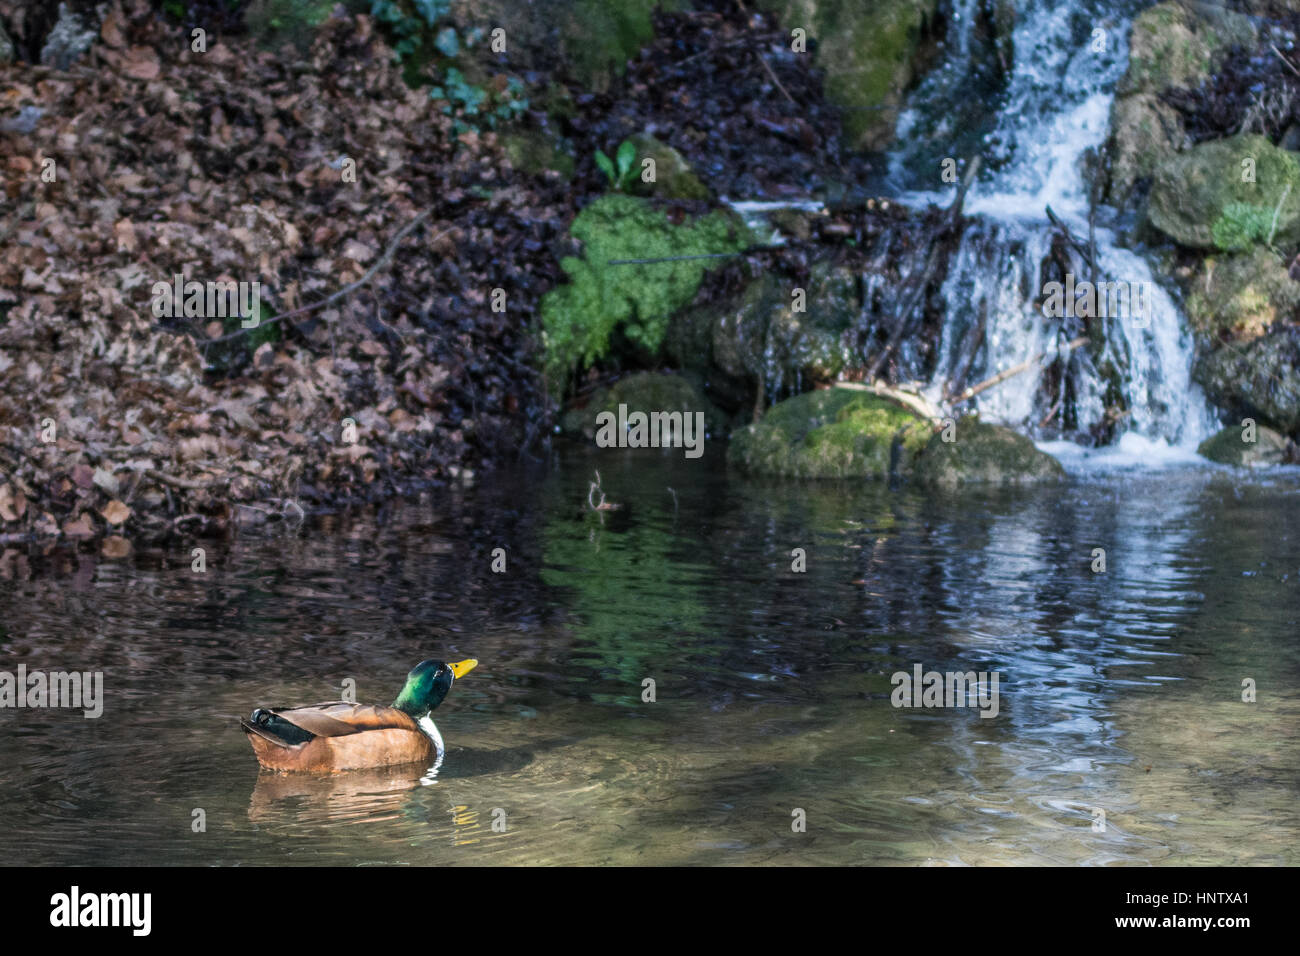 Duck into the pond with waterfall in background - Stock Image